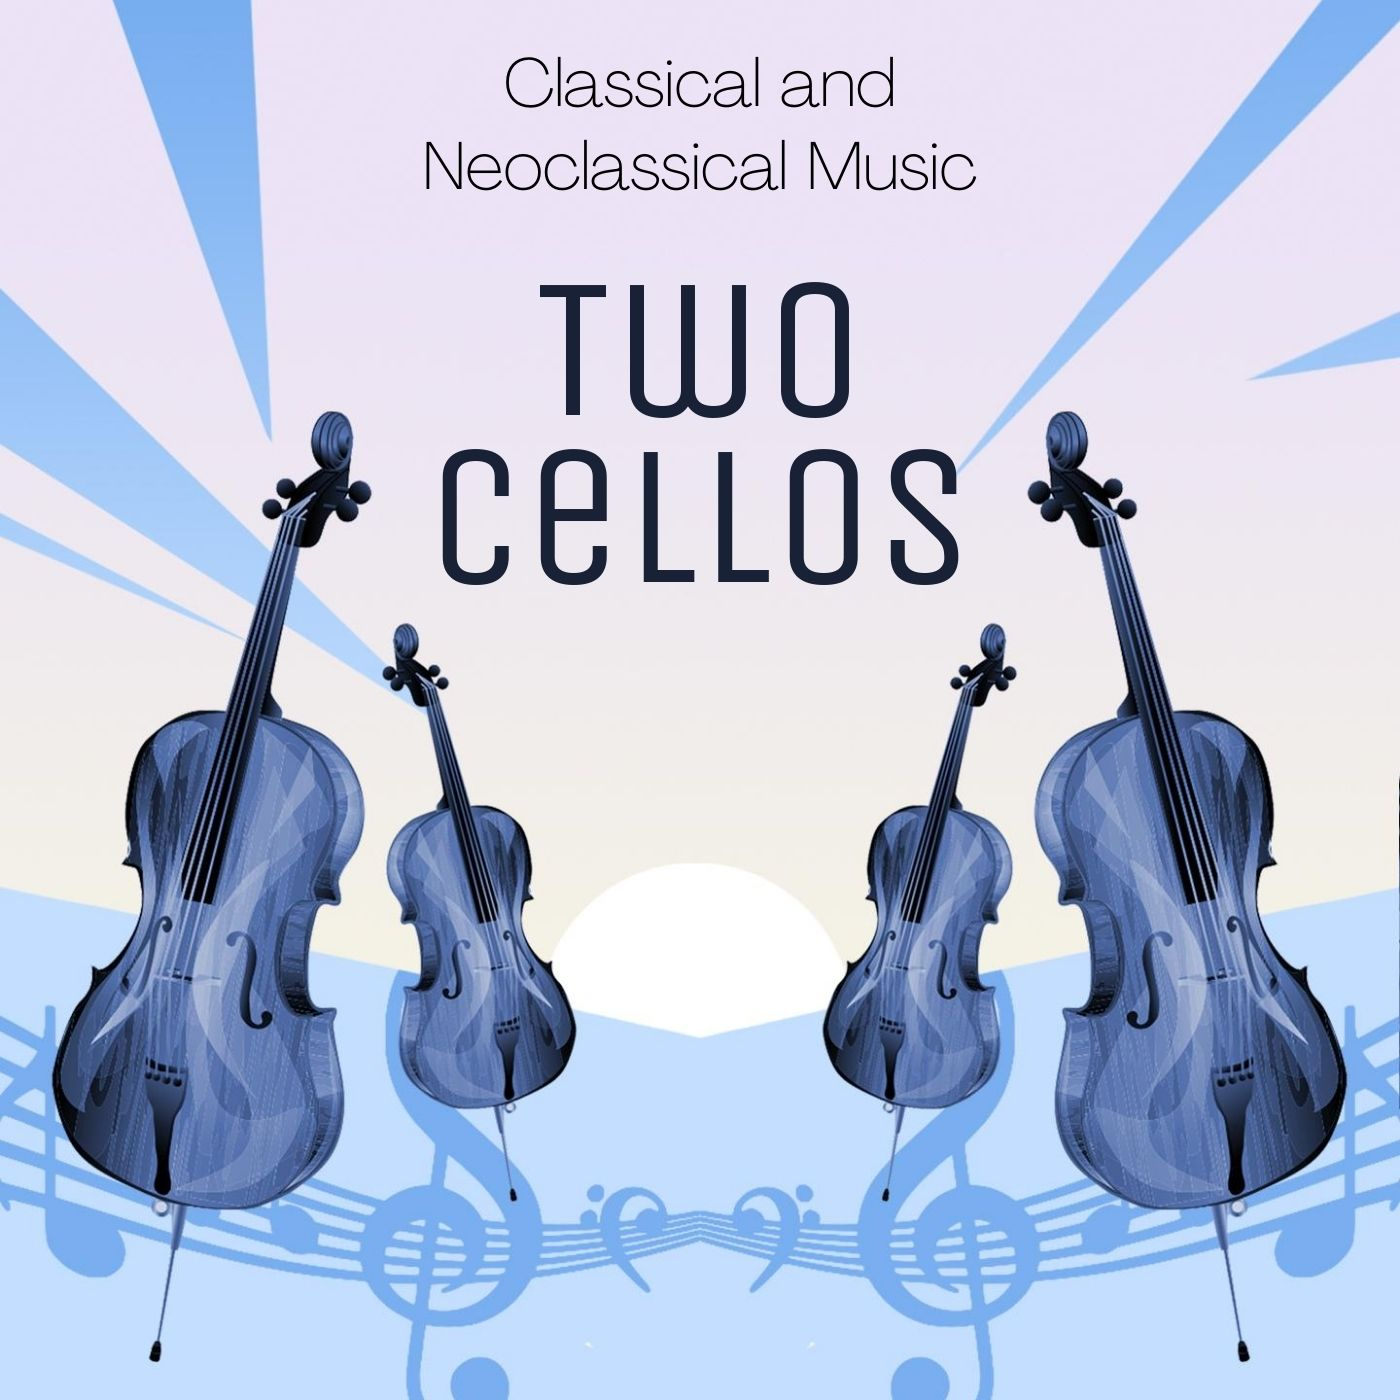 Mr & Mrs Cello - 2 Cellos - Classical & Neoclassical Music